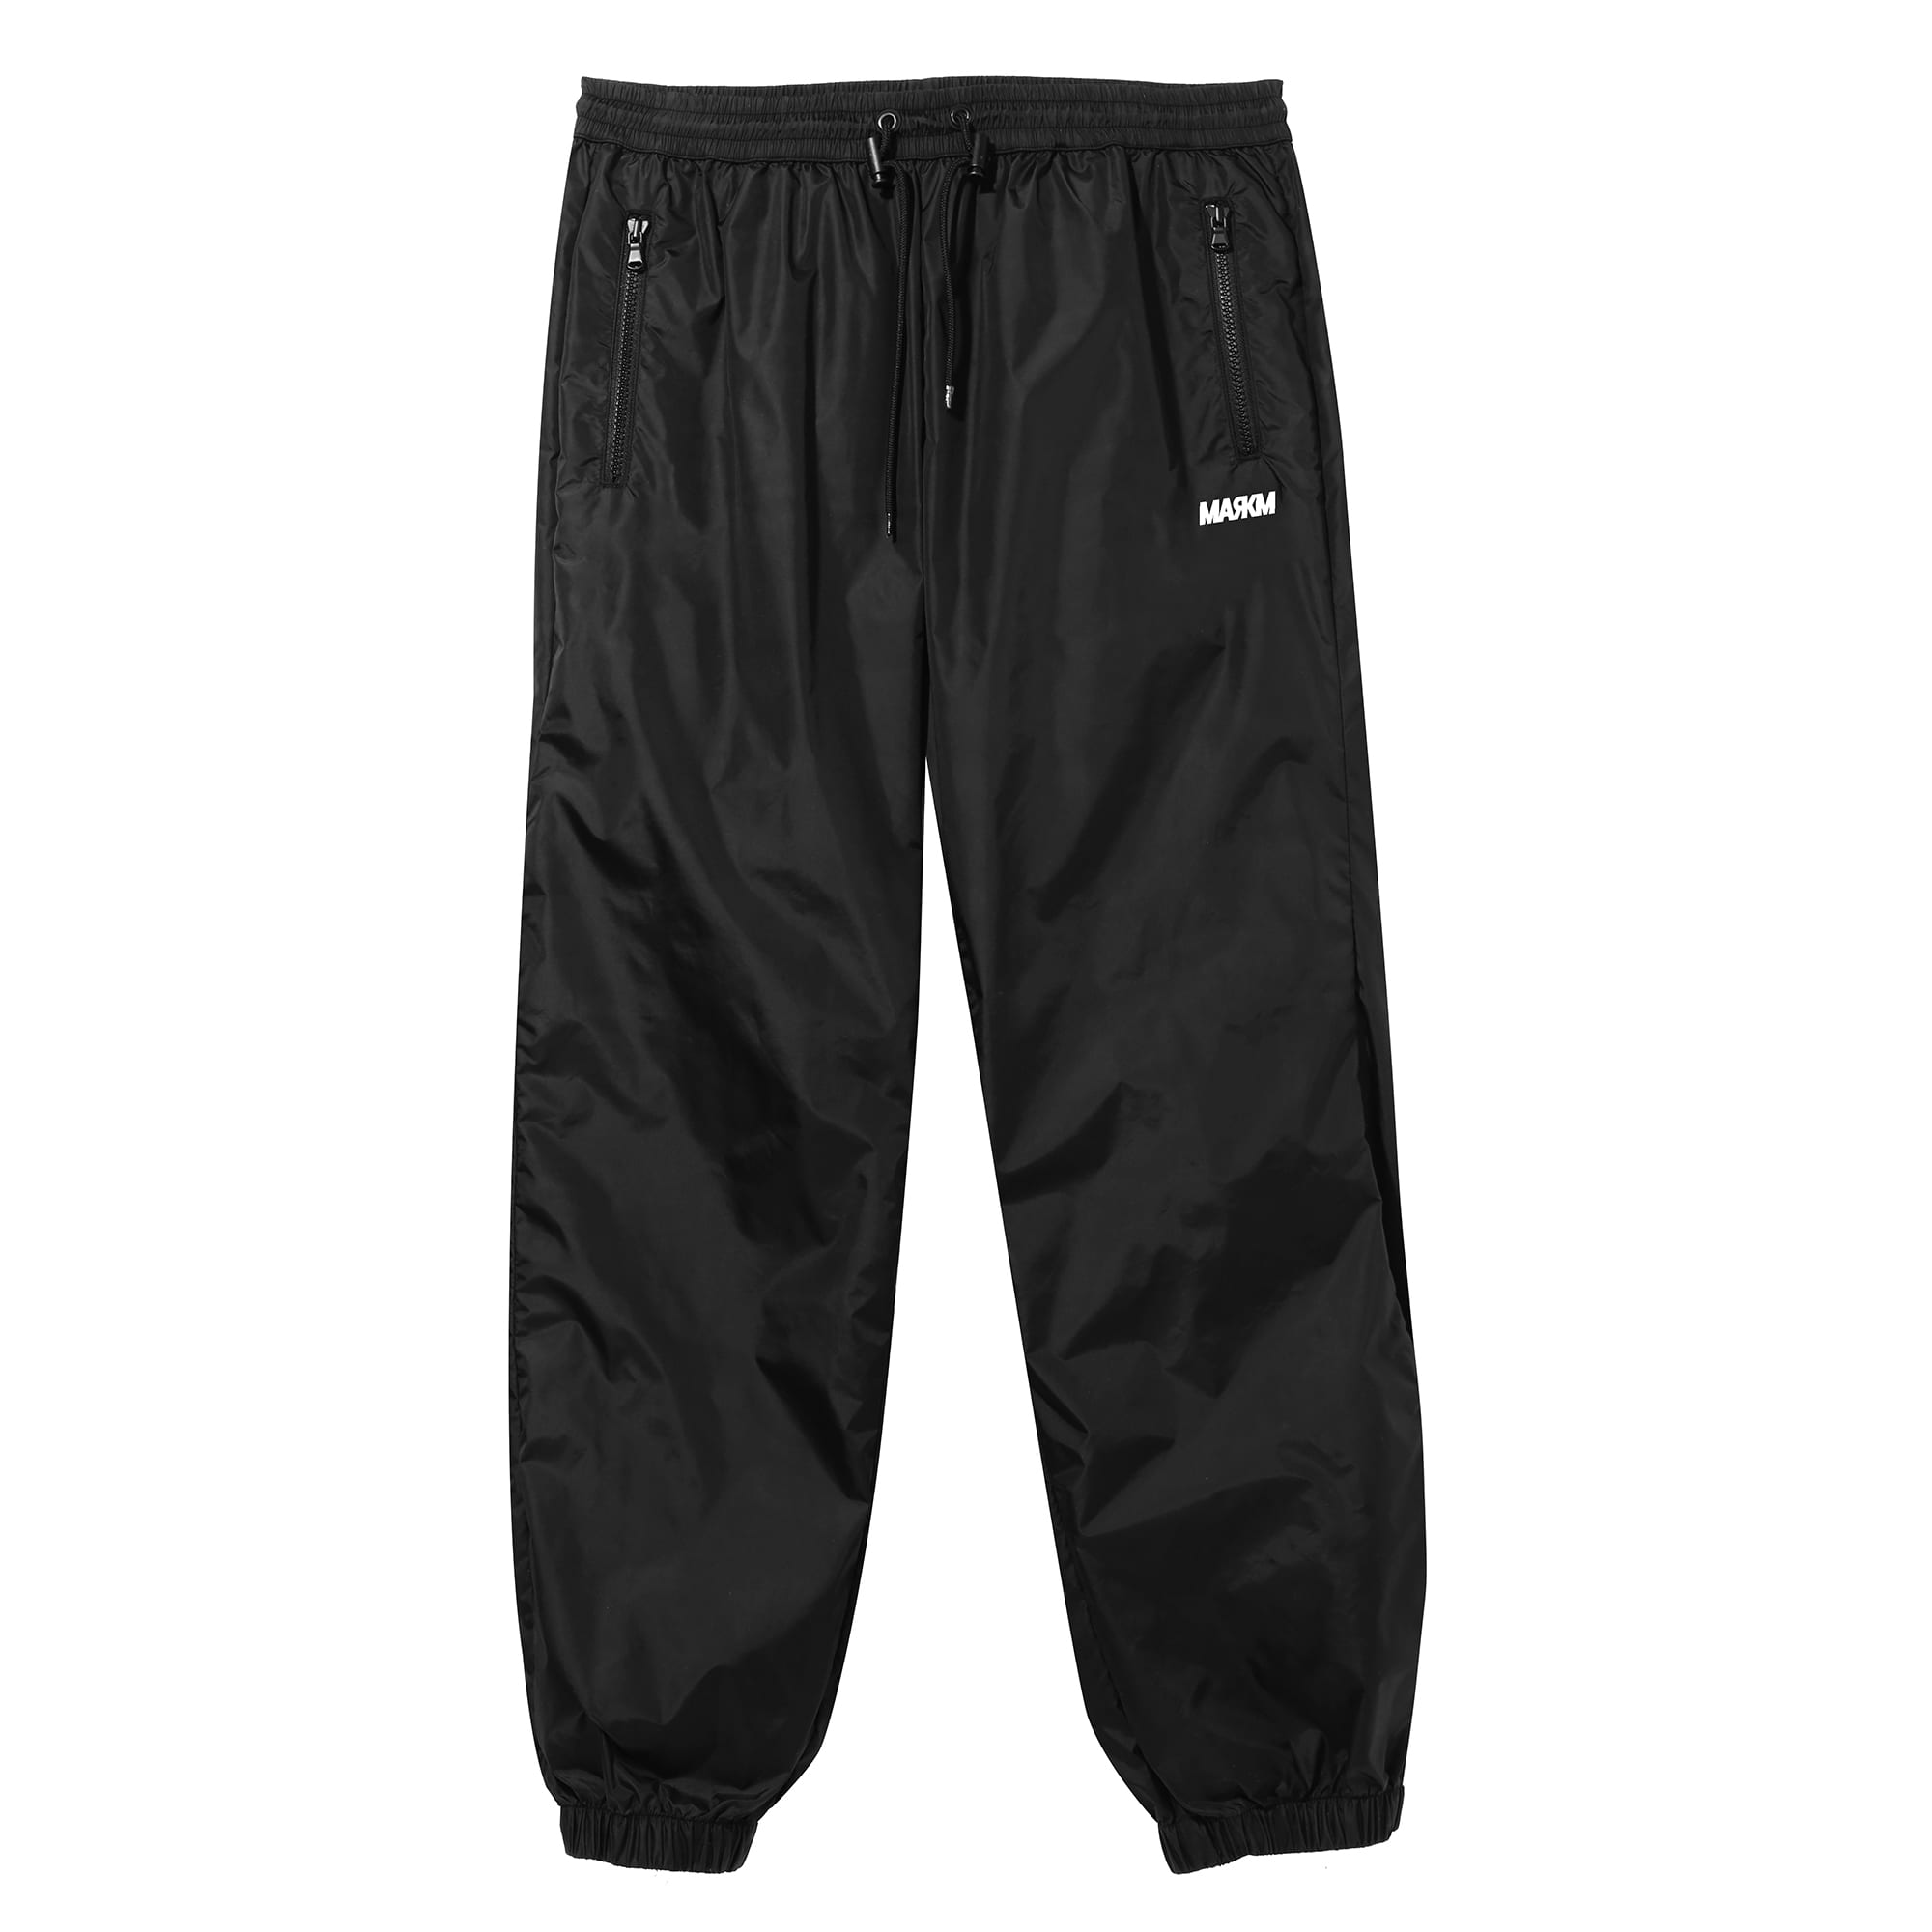 19FW MM Jogger Pants MYFAI4506